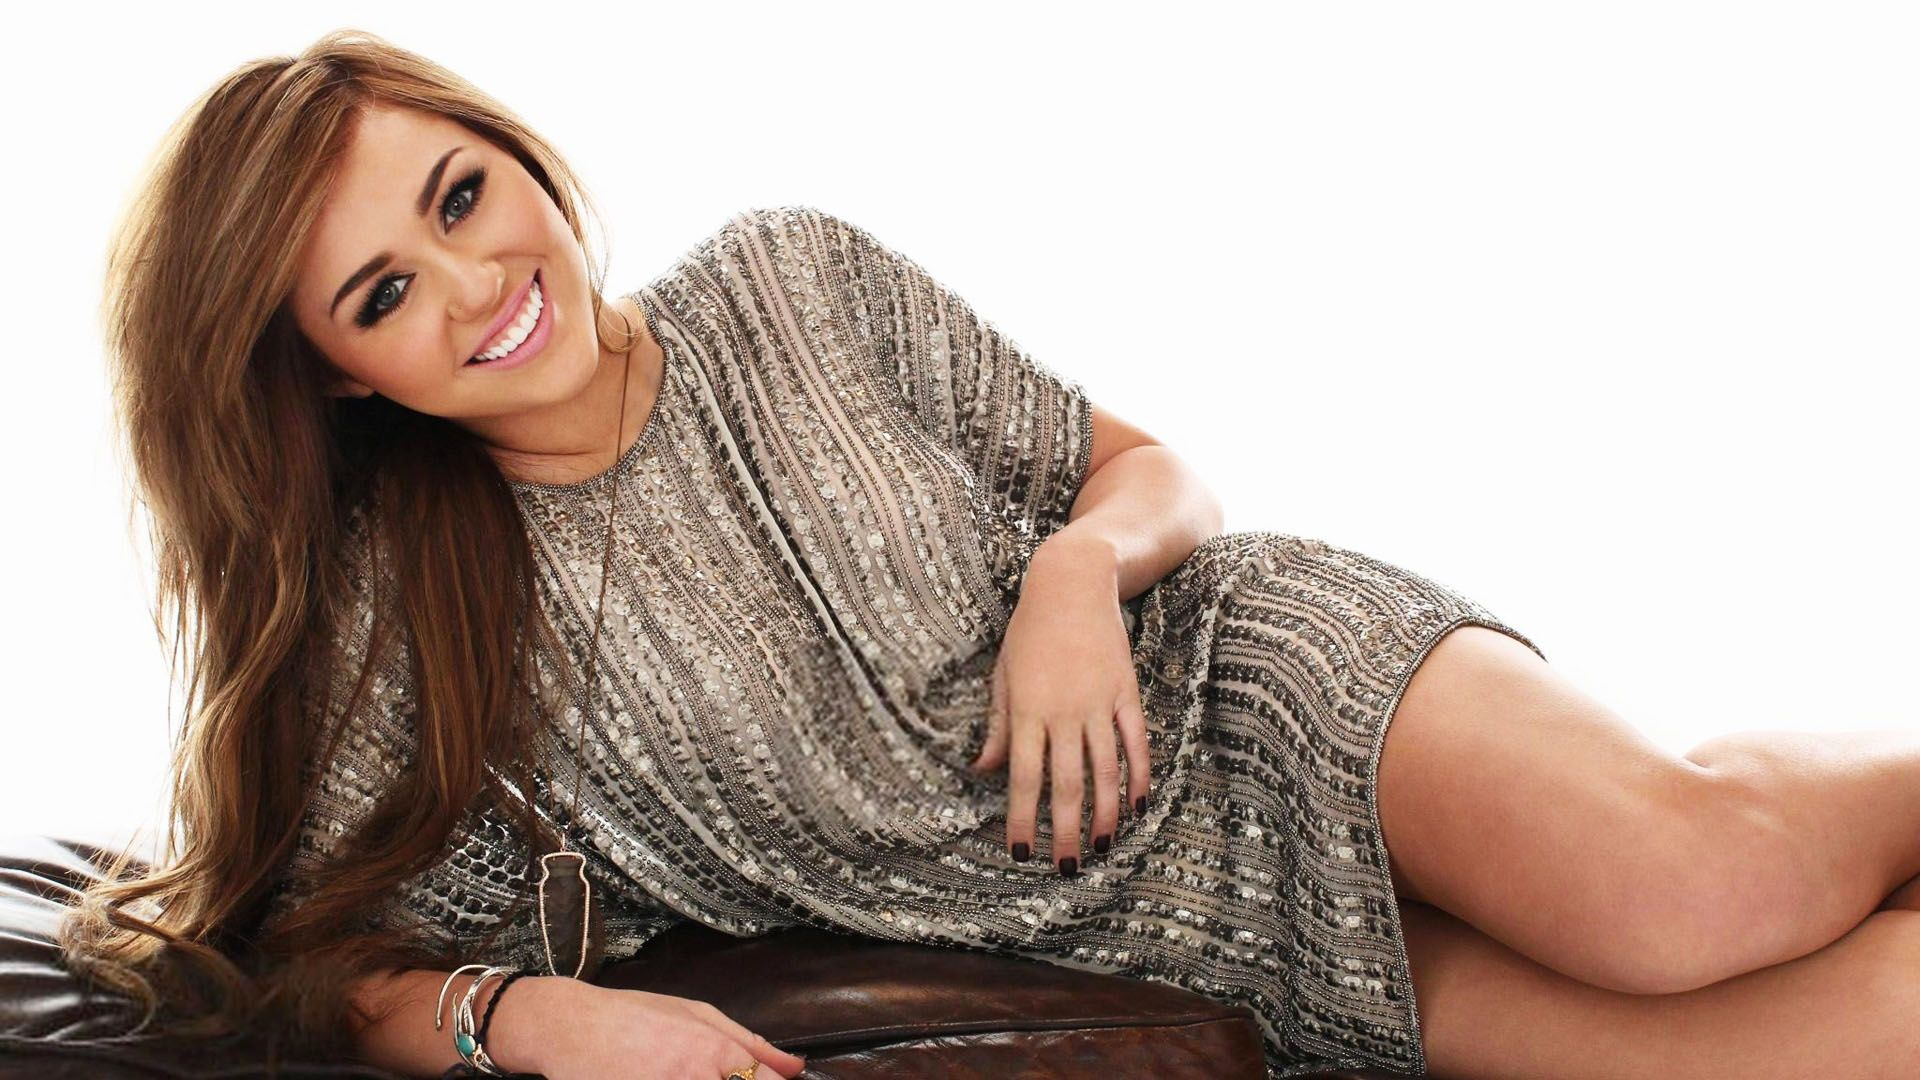 Smiling Miley Cyrus Latest Hd Wallpaper Miley Cyrus